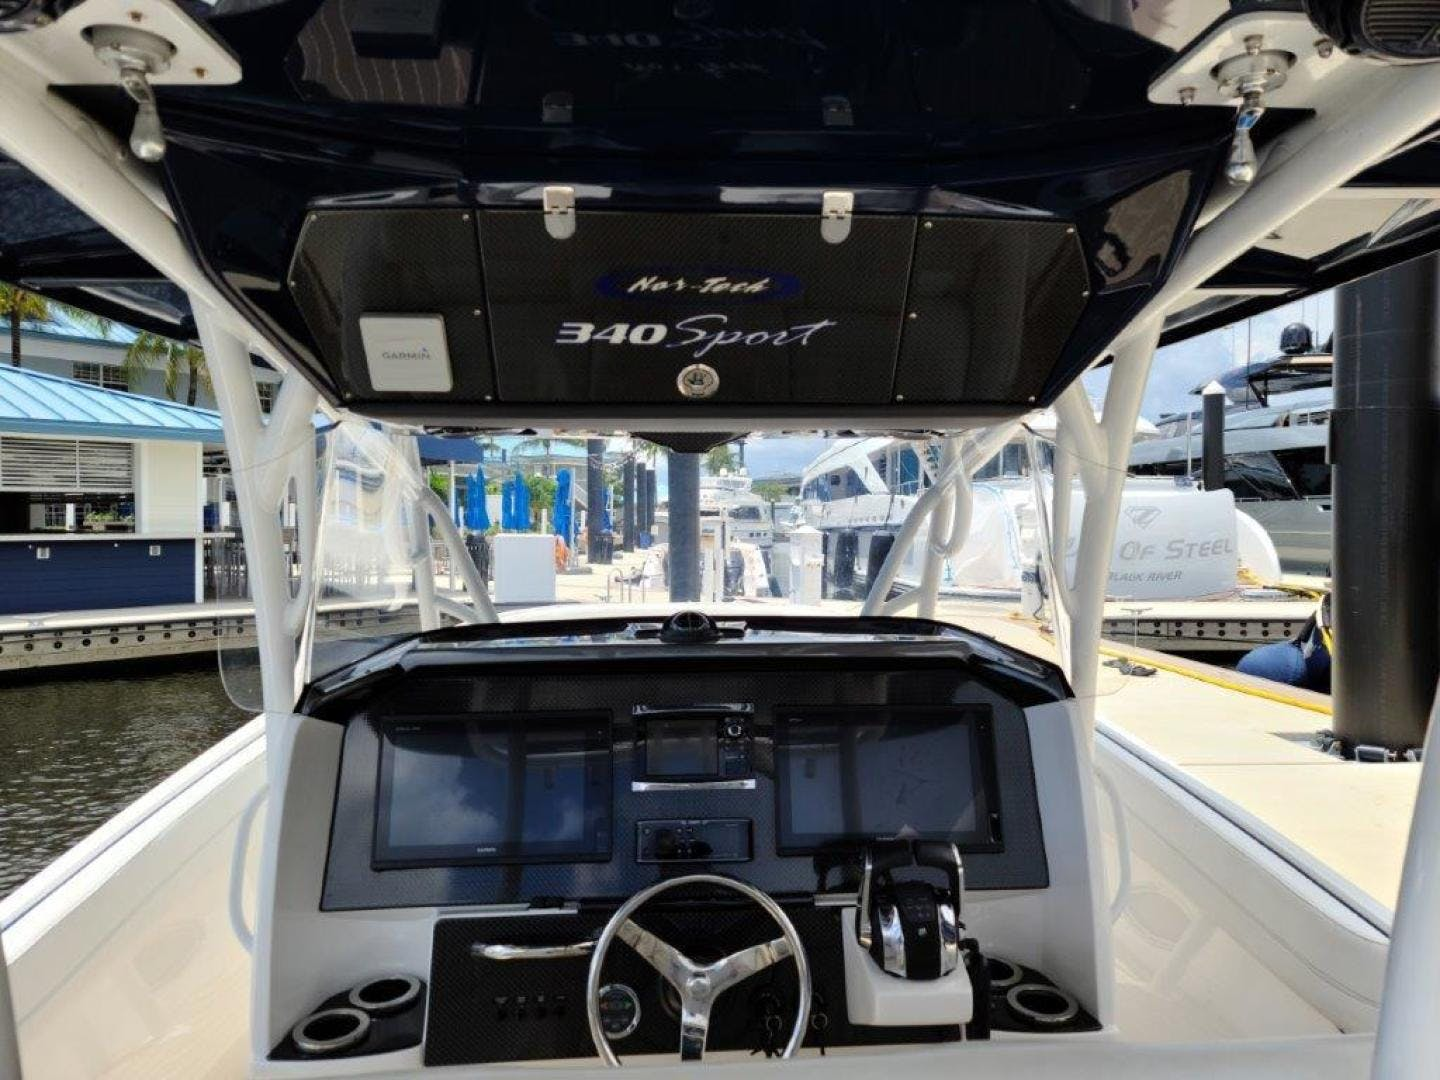 2016 Nor-Tech 34' 340 Center Console  | Picture 6 of 8